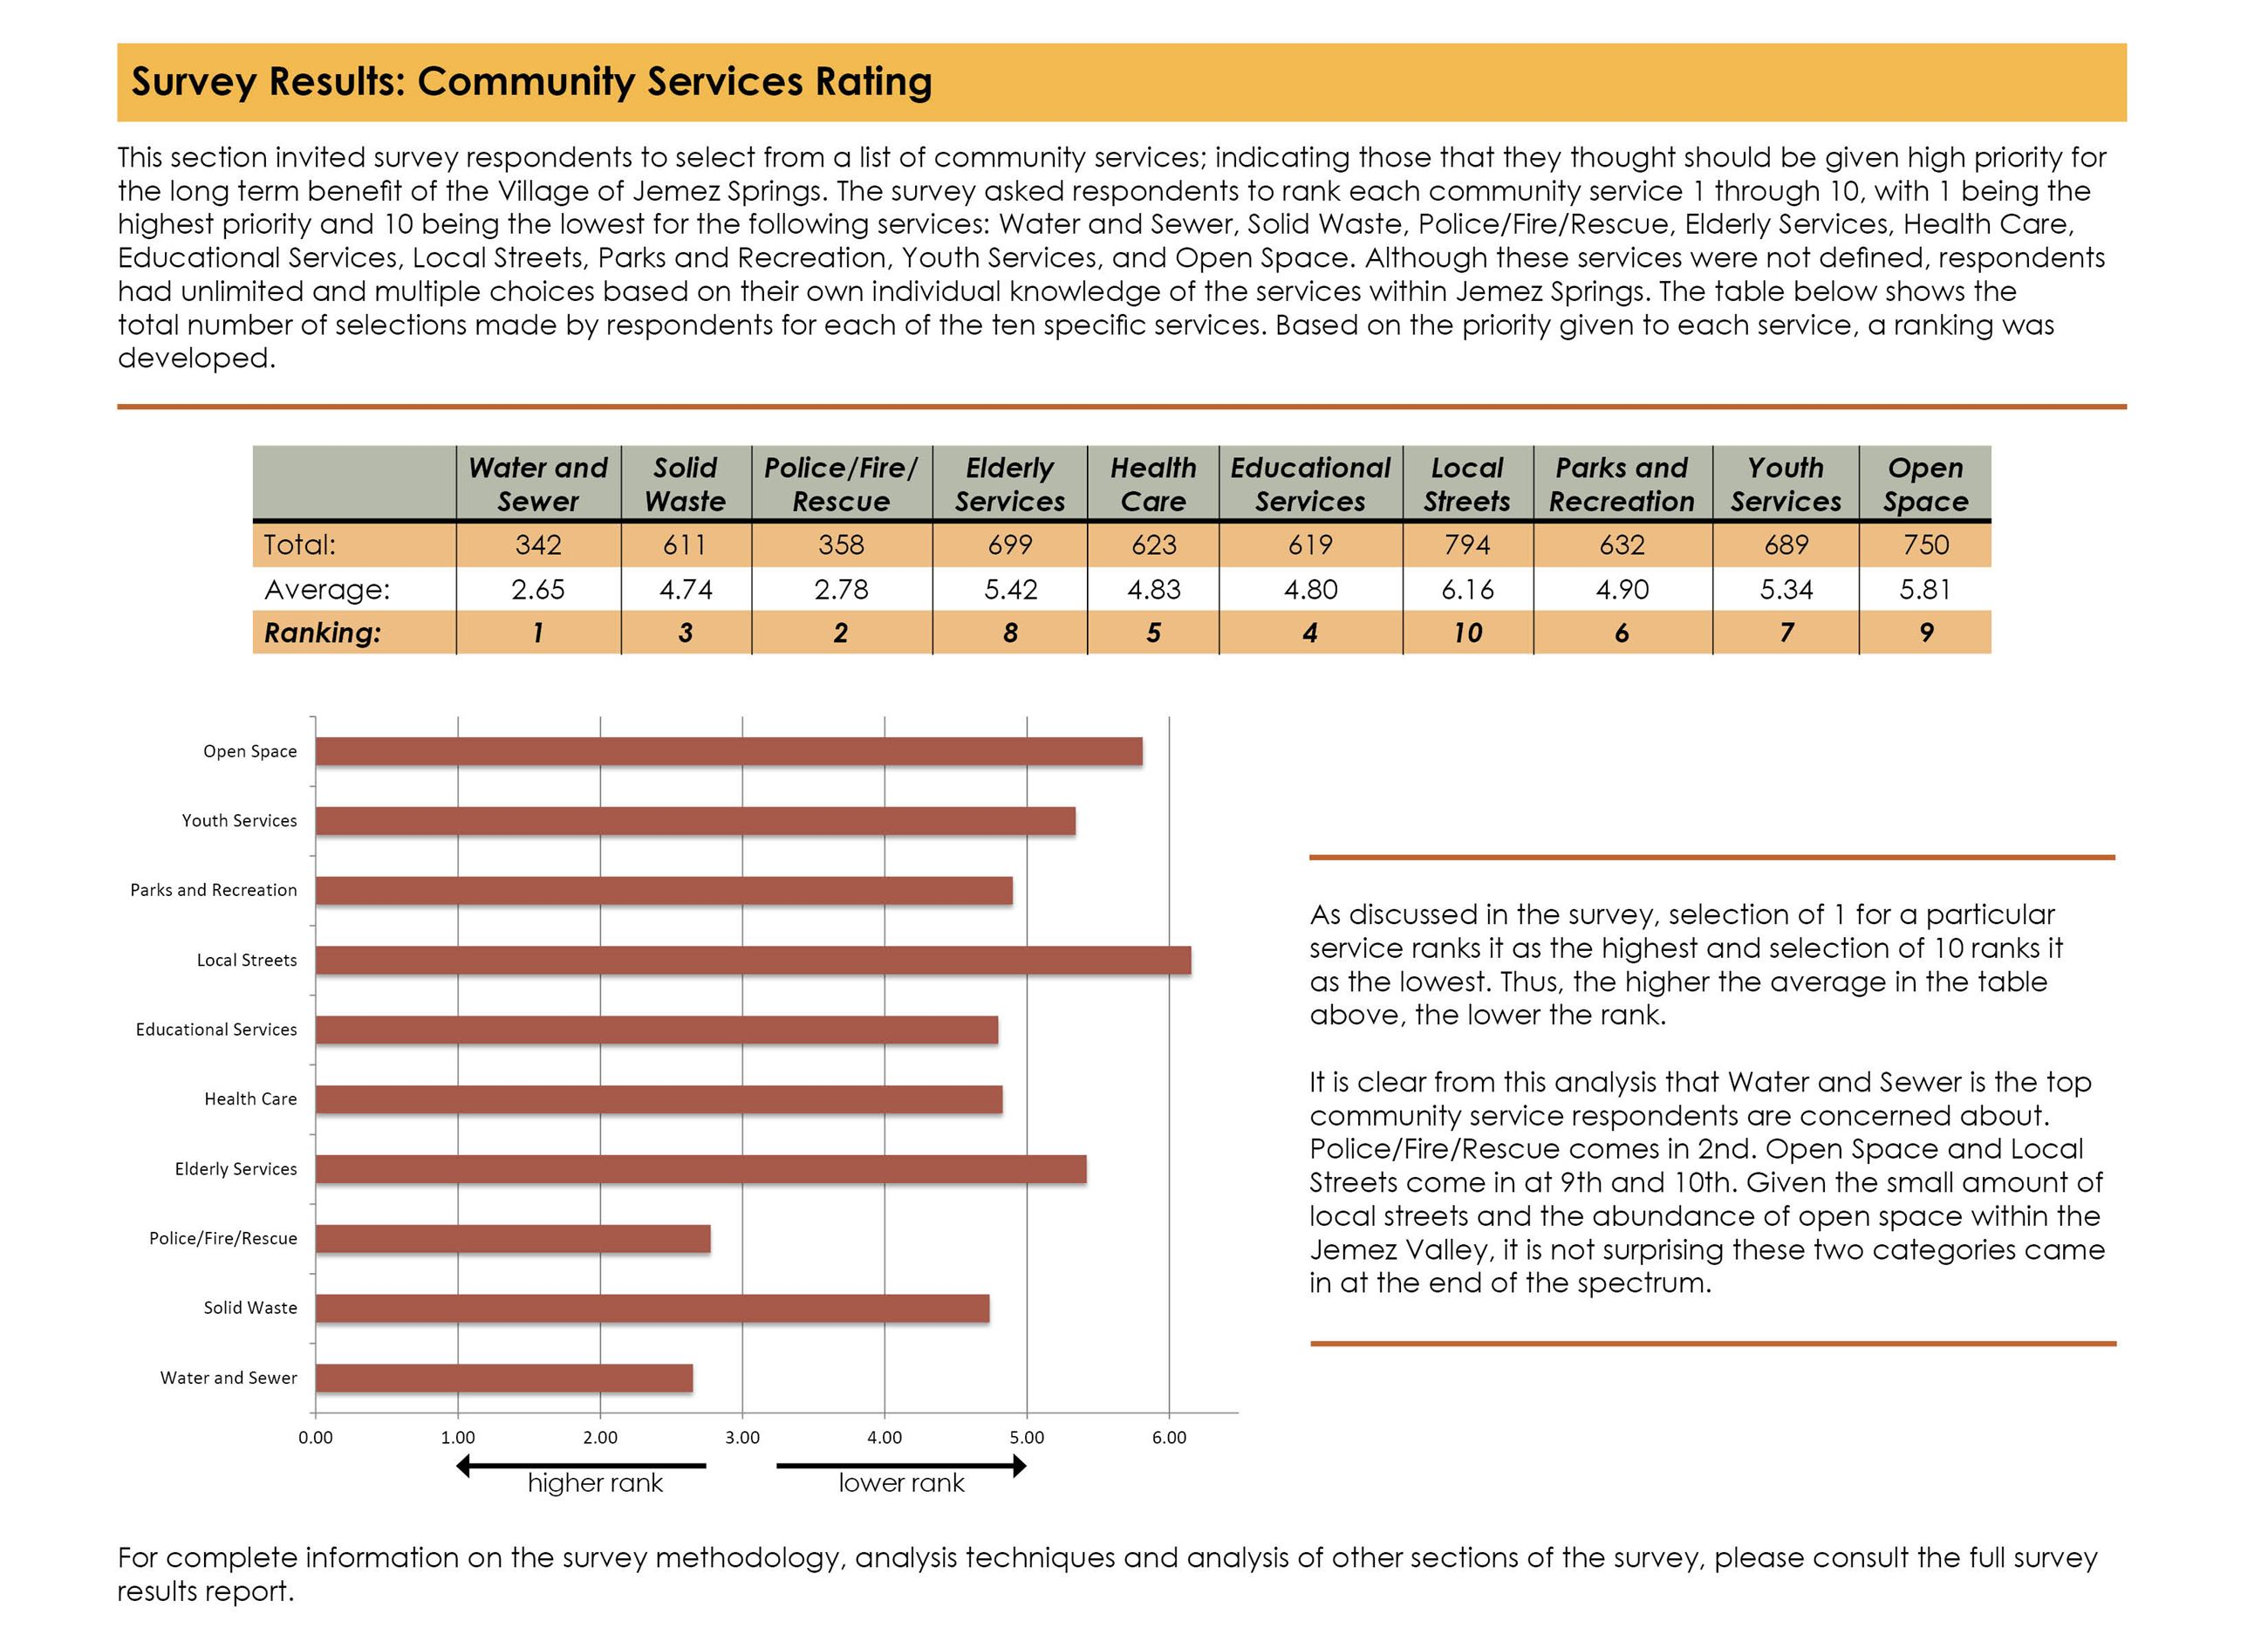 Survey Results - Community Services Rating